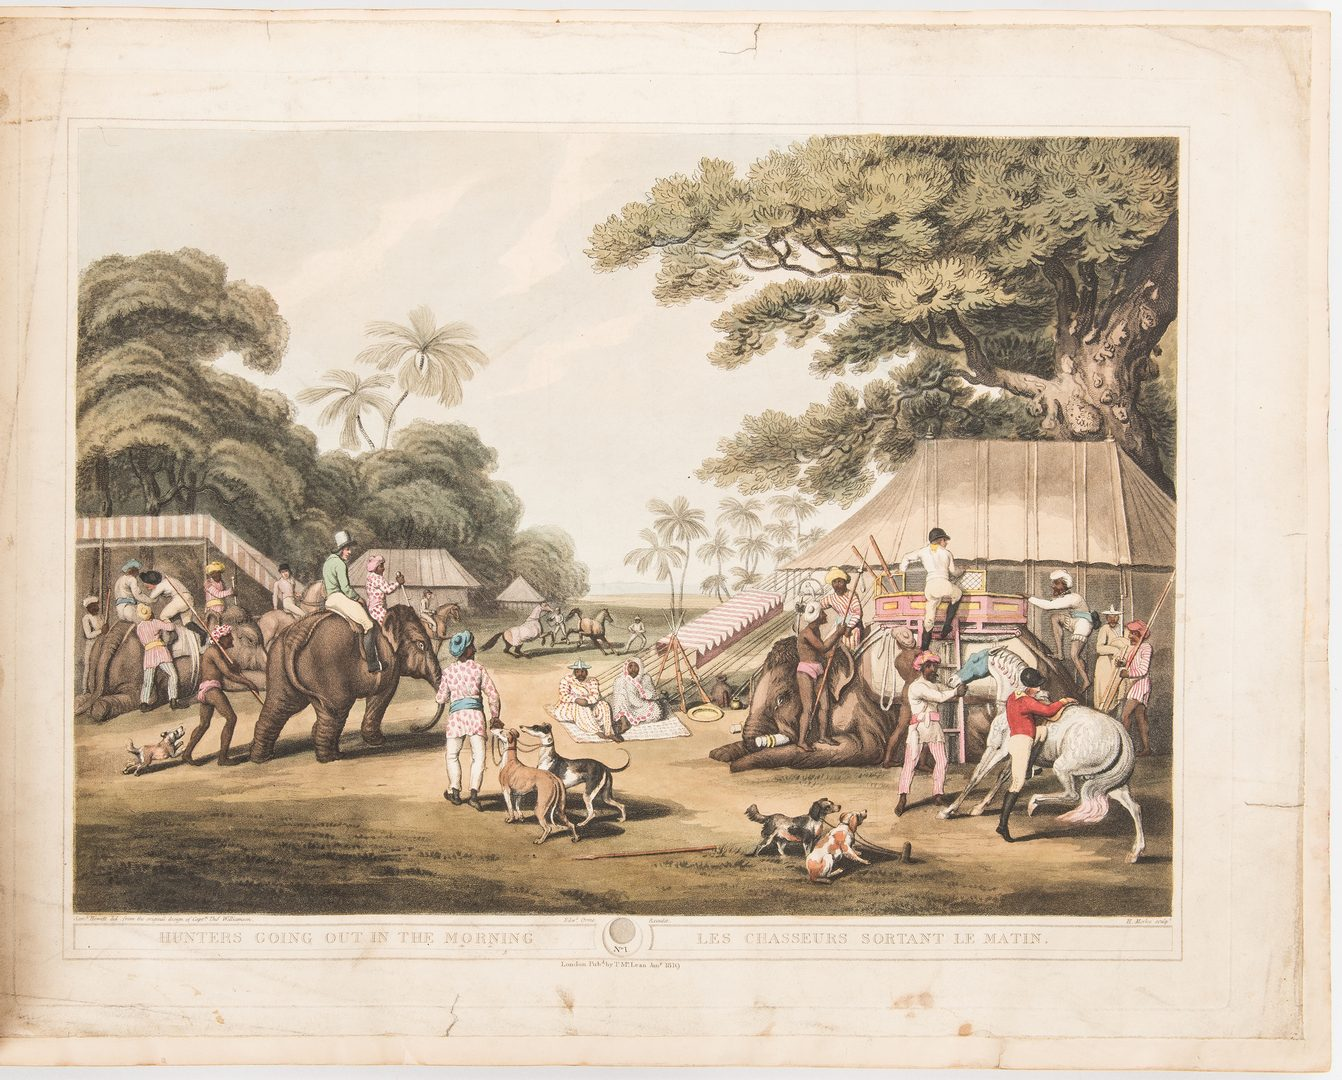 Lot 688: Oriental Field Sports of the East, T. Williamson, 1819